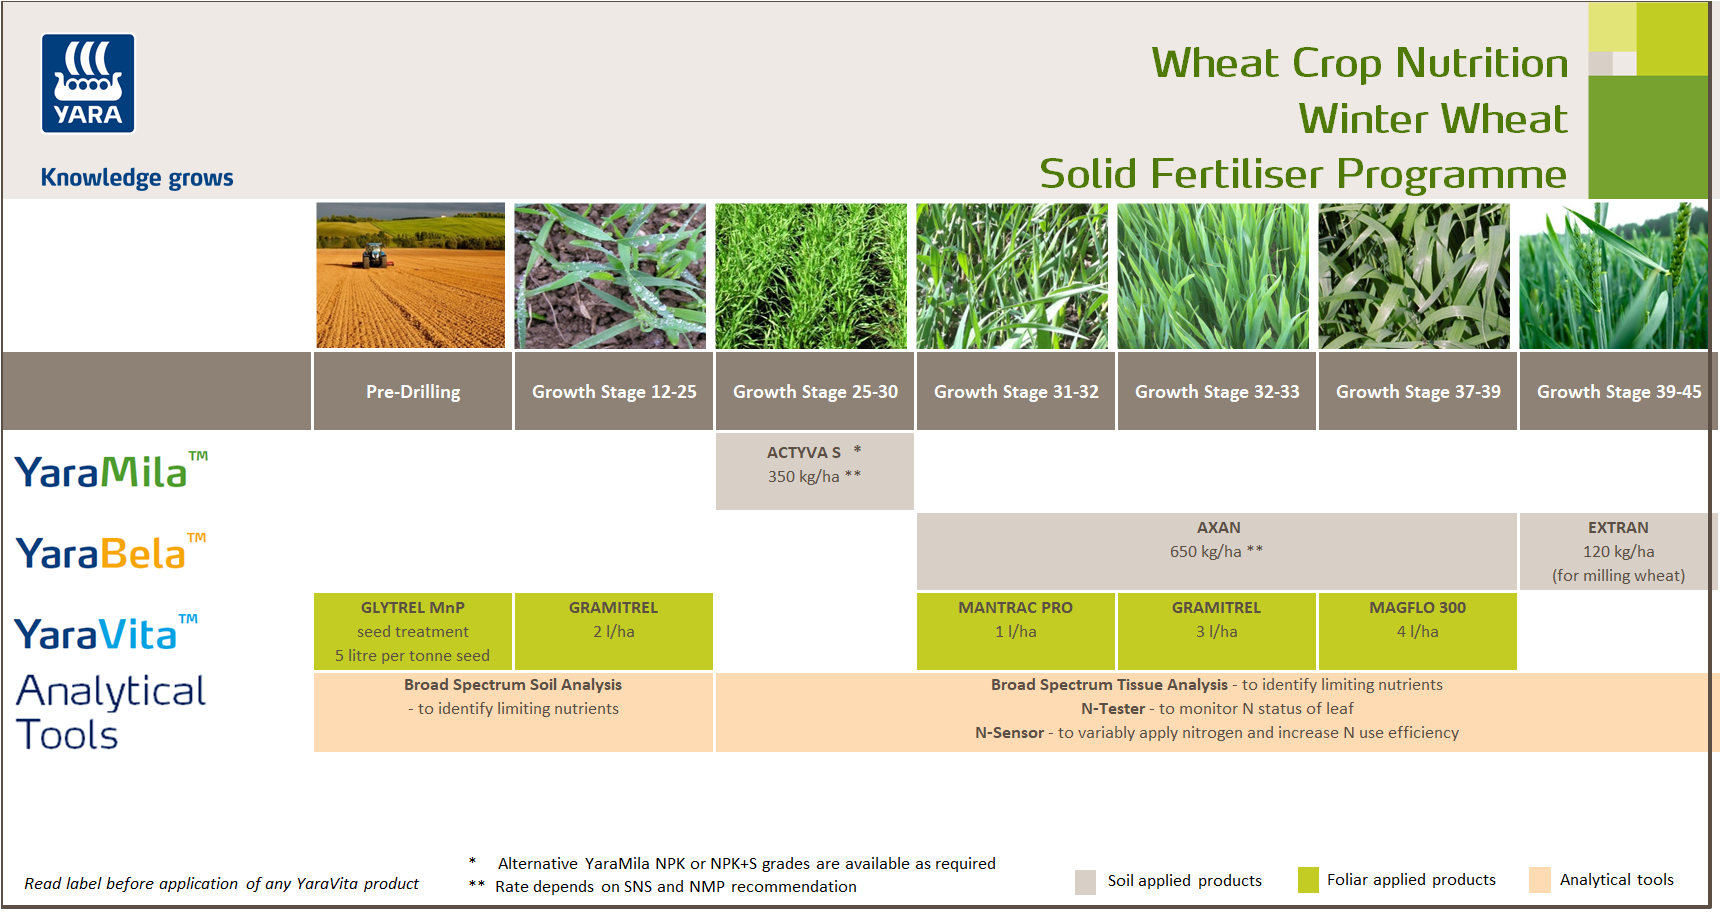 Winter wheat fertiliser programme